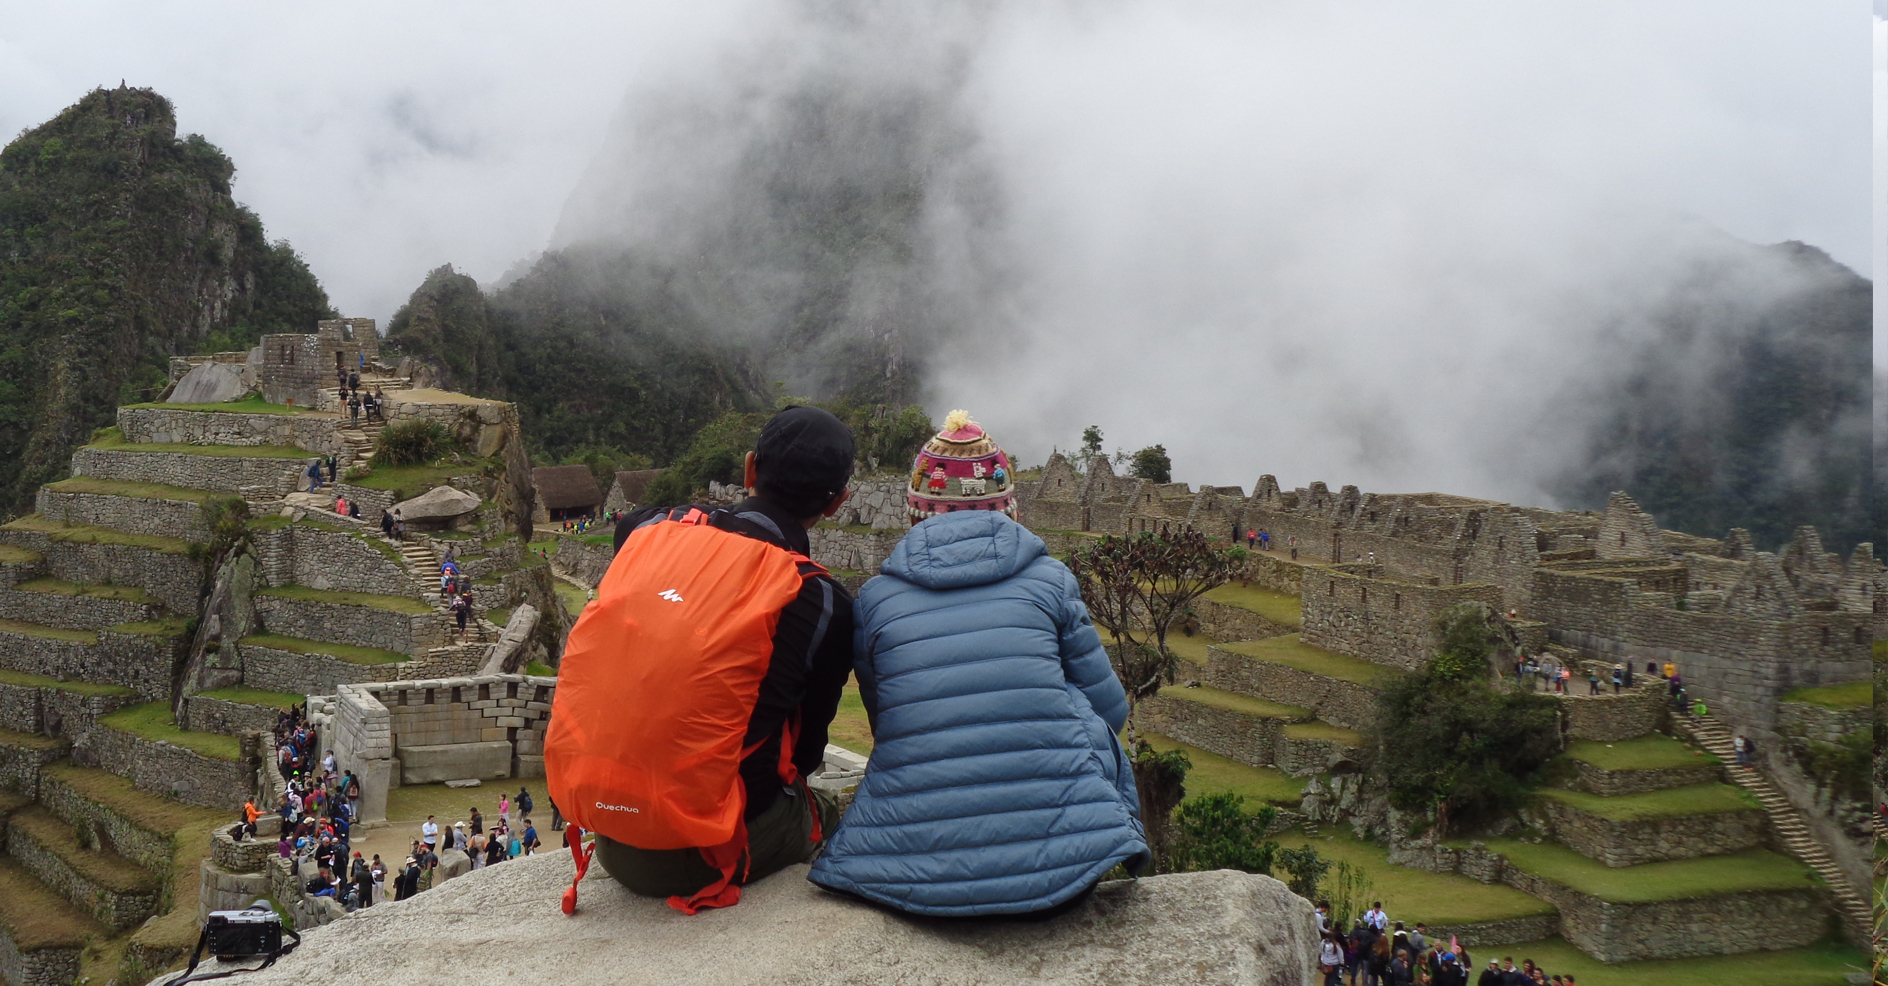 Tours in Peru 1 to 30 Days Tours: Tour Peru 07 days: Lima, Machupicchu, Titicaca lake and Lima. The best tourist packages in Peru and South America.